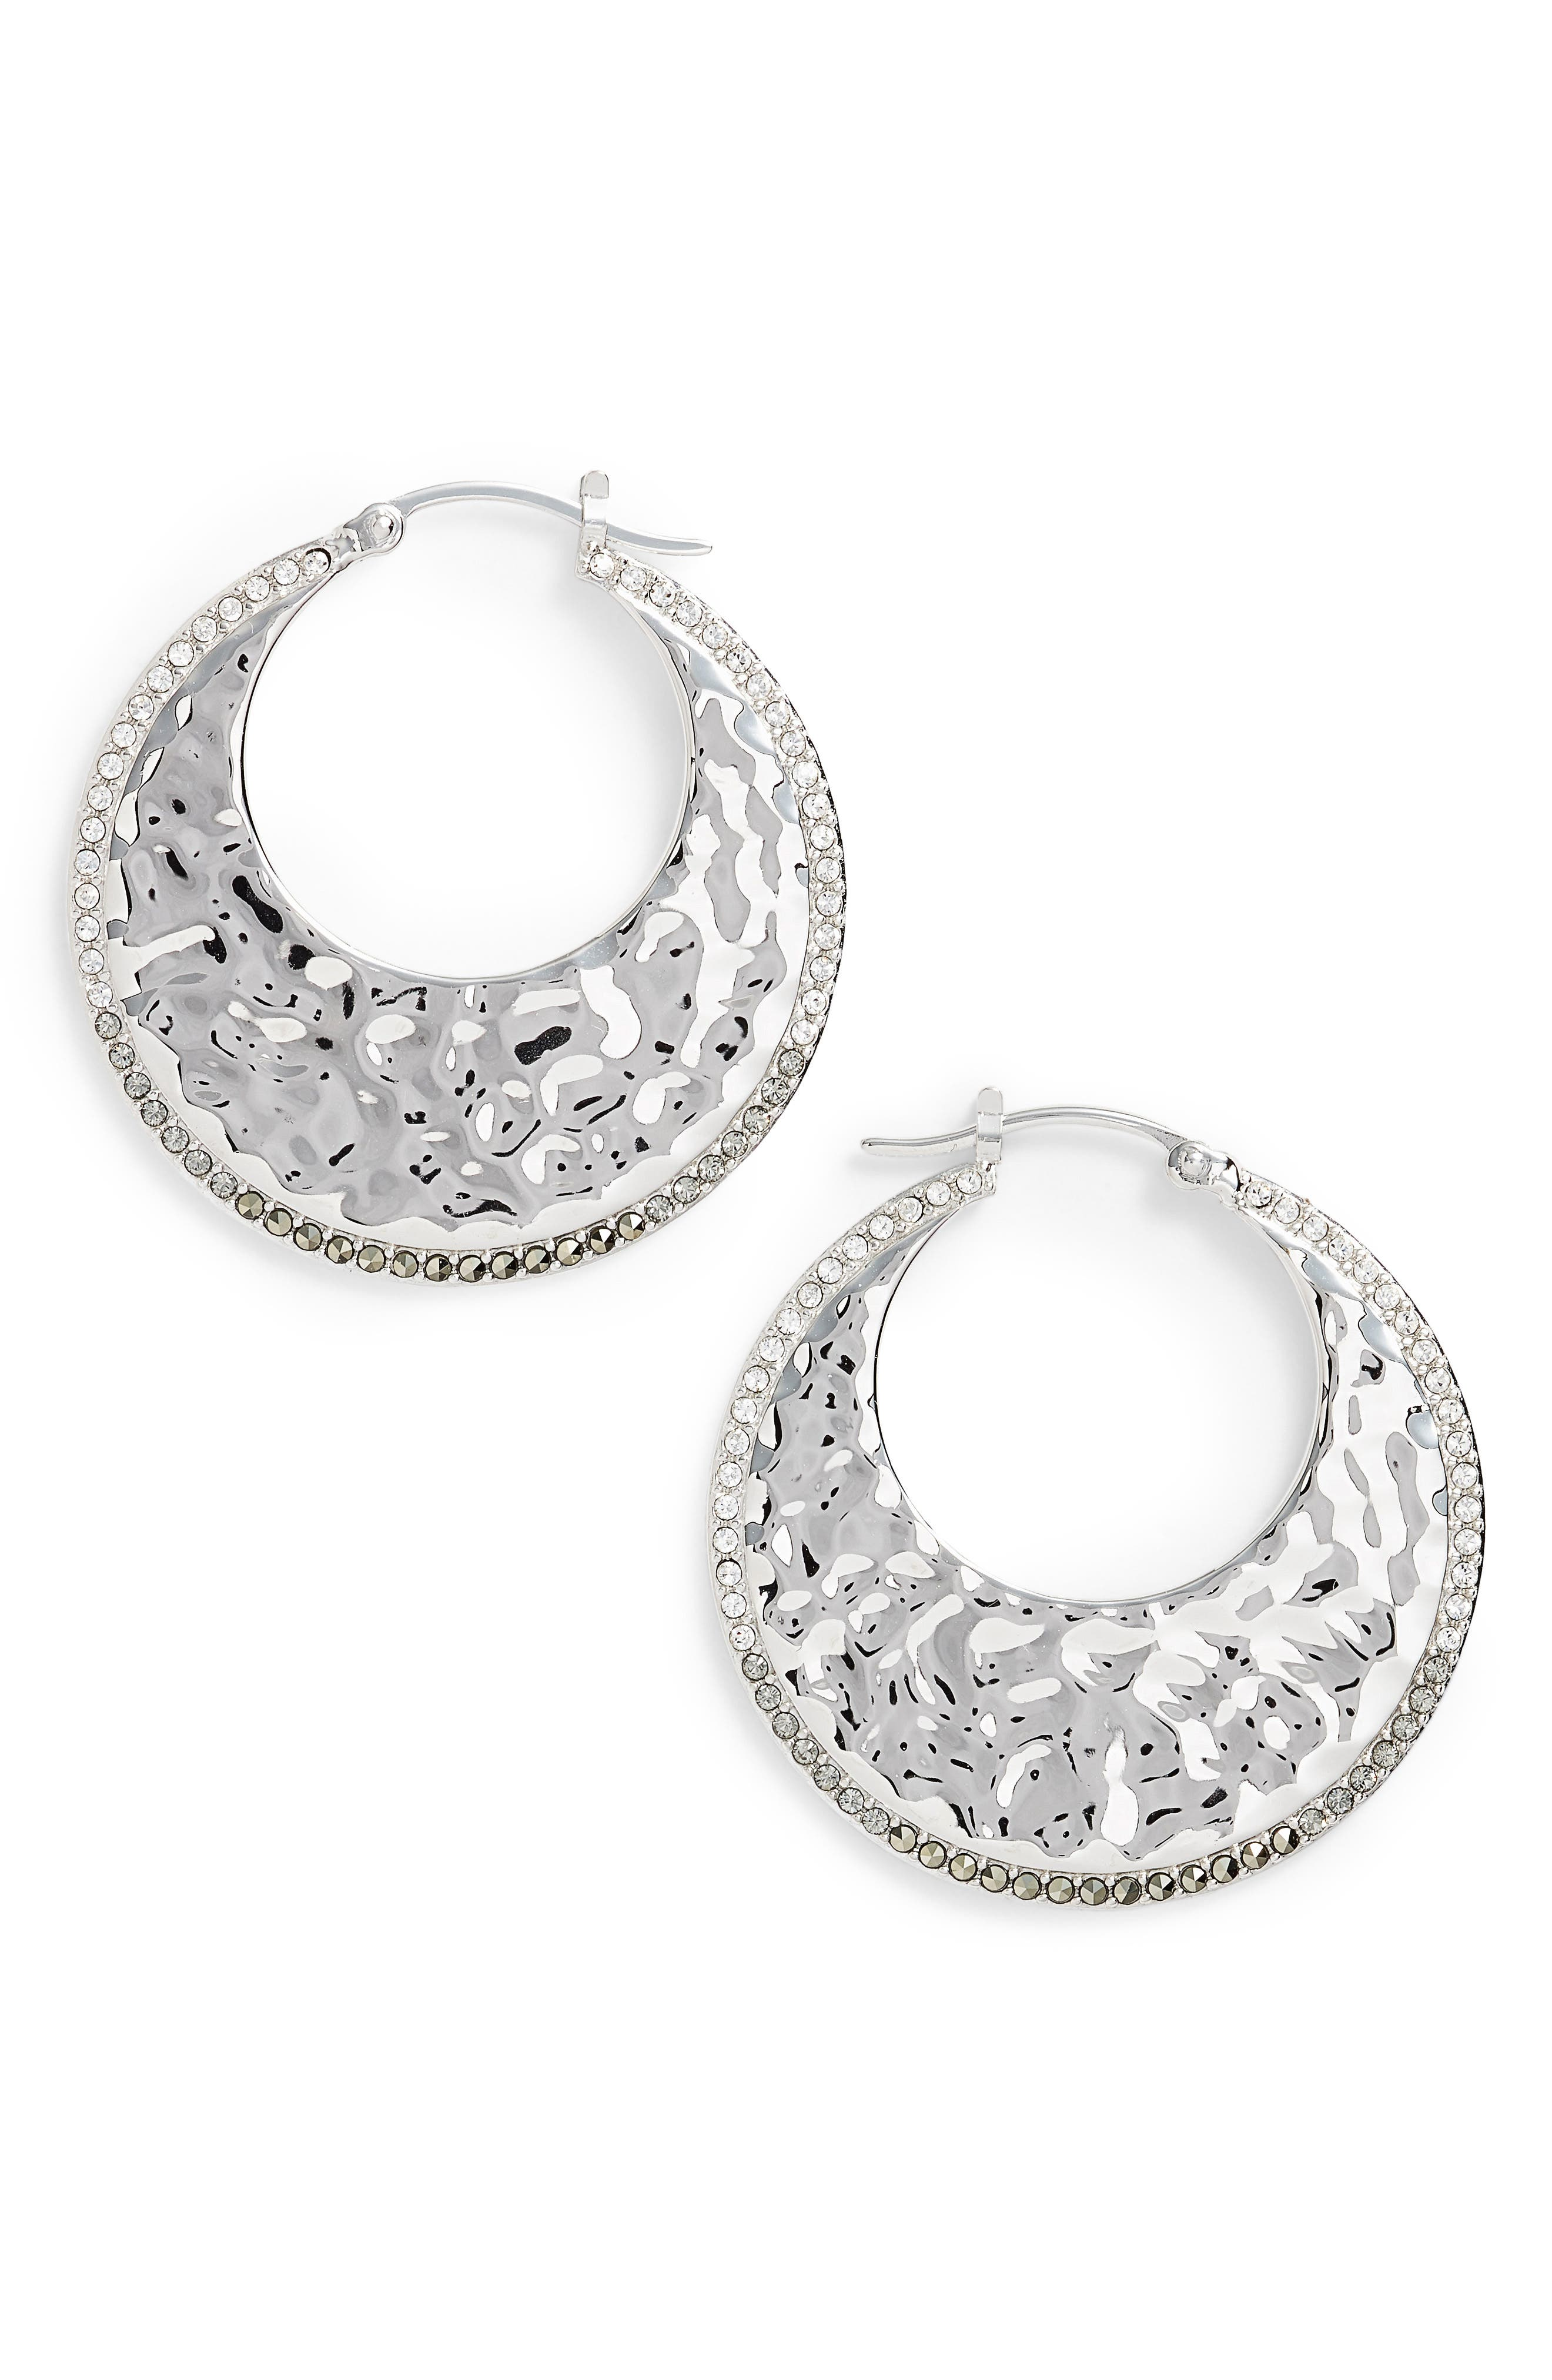 Judith Jack Hammered Hoop Earrings